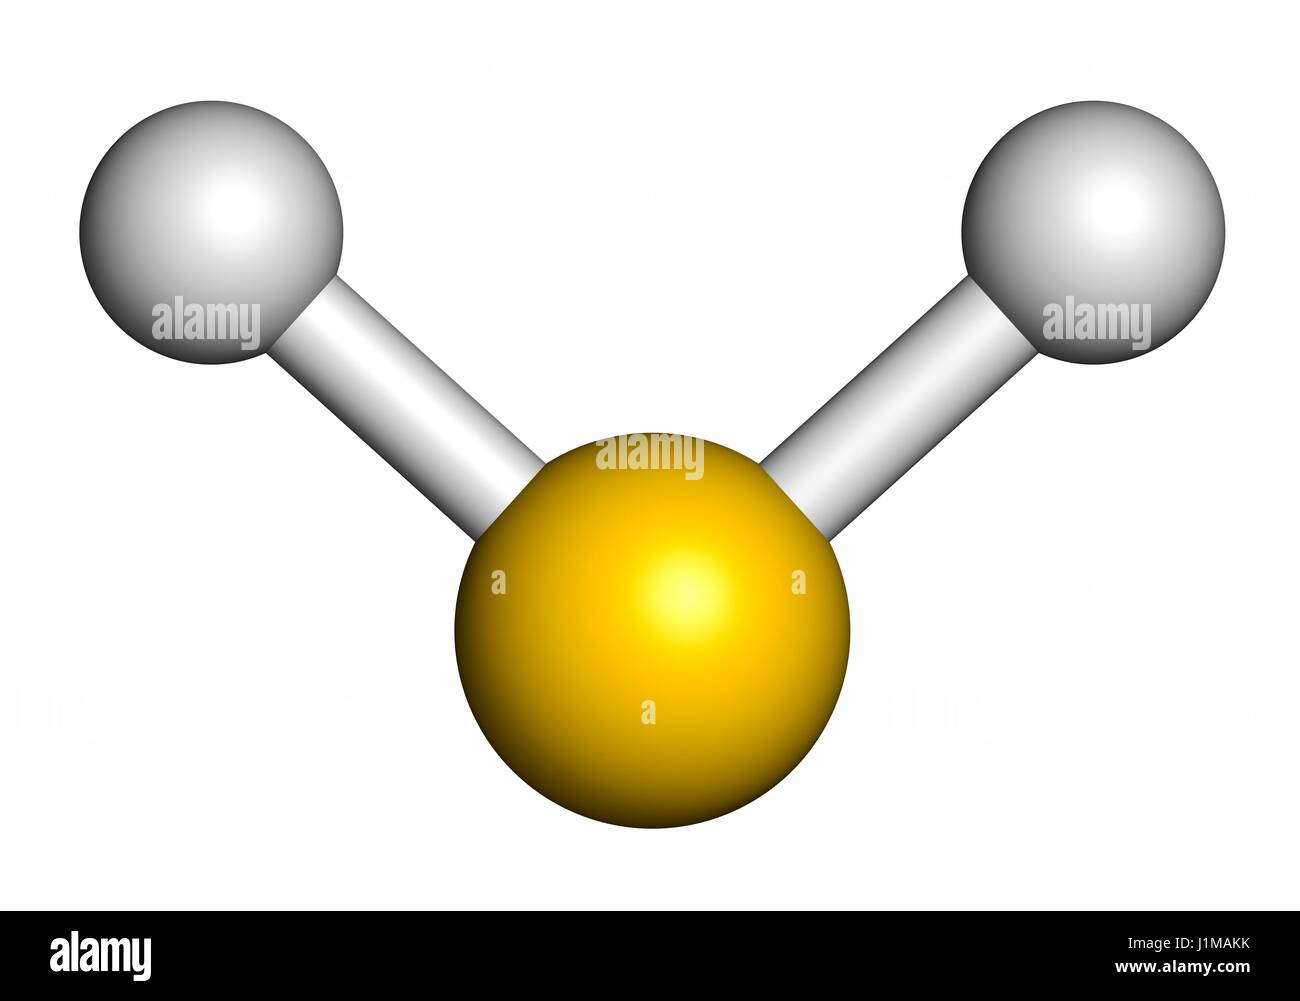 Hydrogen sulfide (H2S) molecule. Toxic gas with characteristic odour of rotten eggs. Atoms are represented as spheres - Stock Image